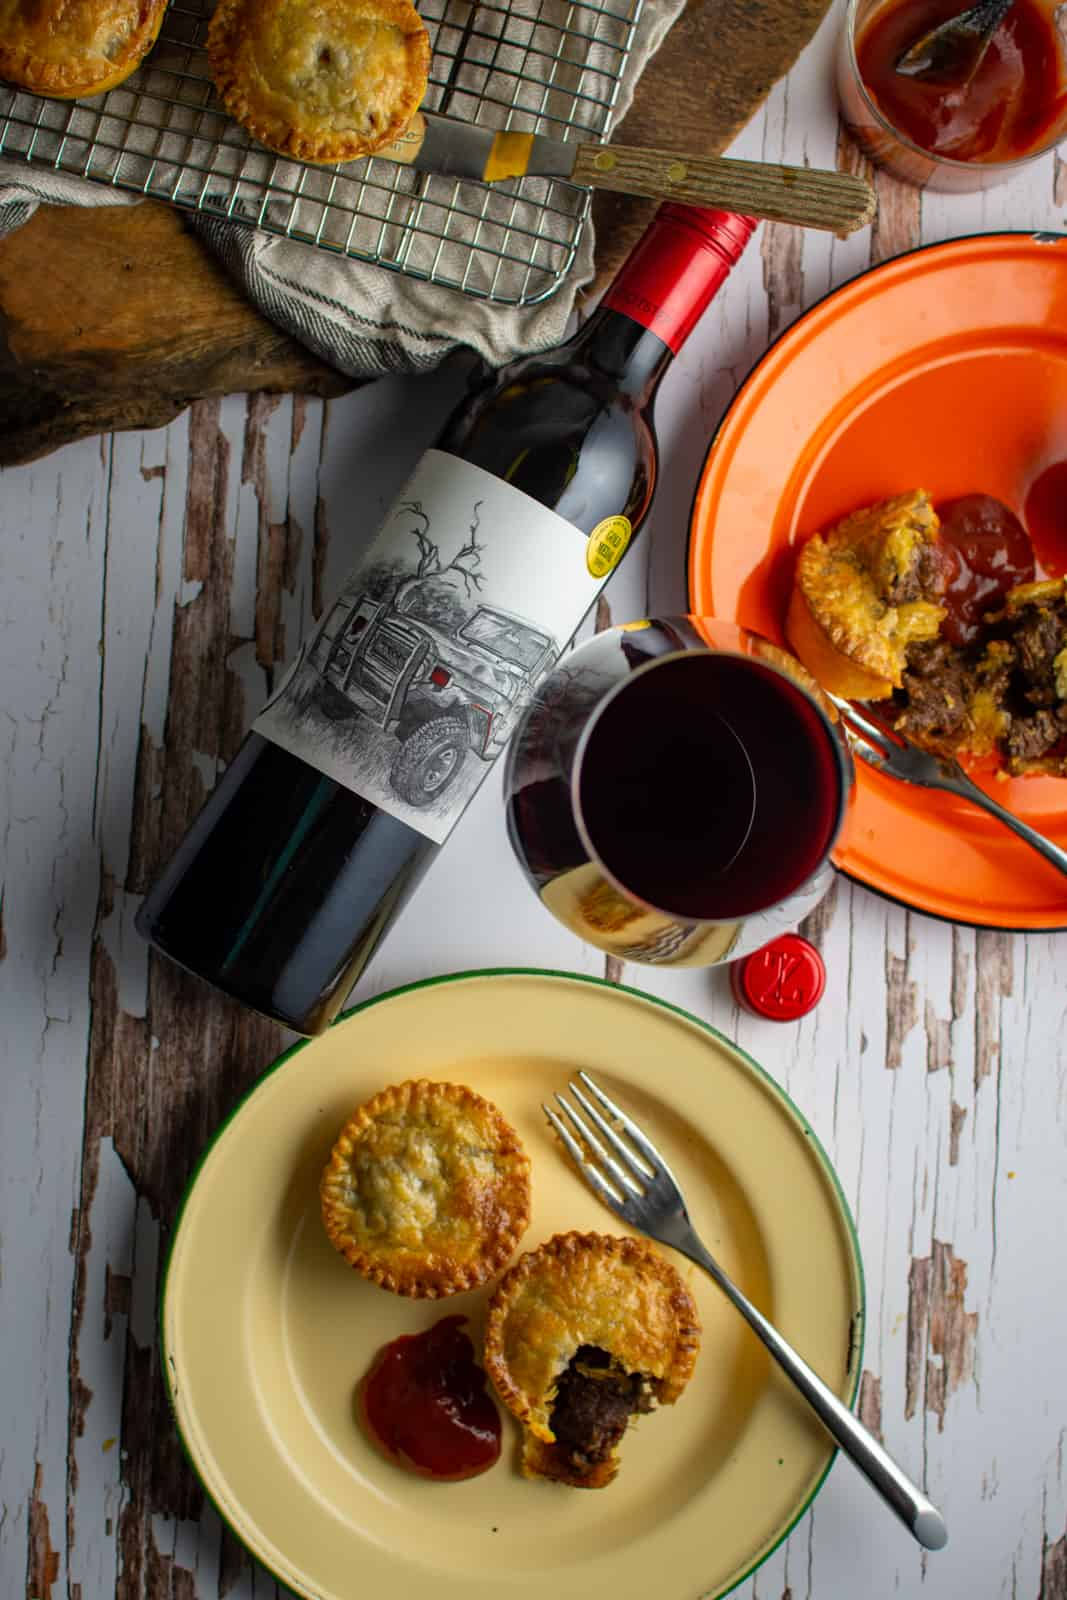 chunky beef pies on plates, red wine lying on its side and more pies on a rack